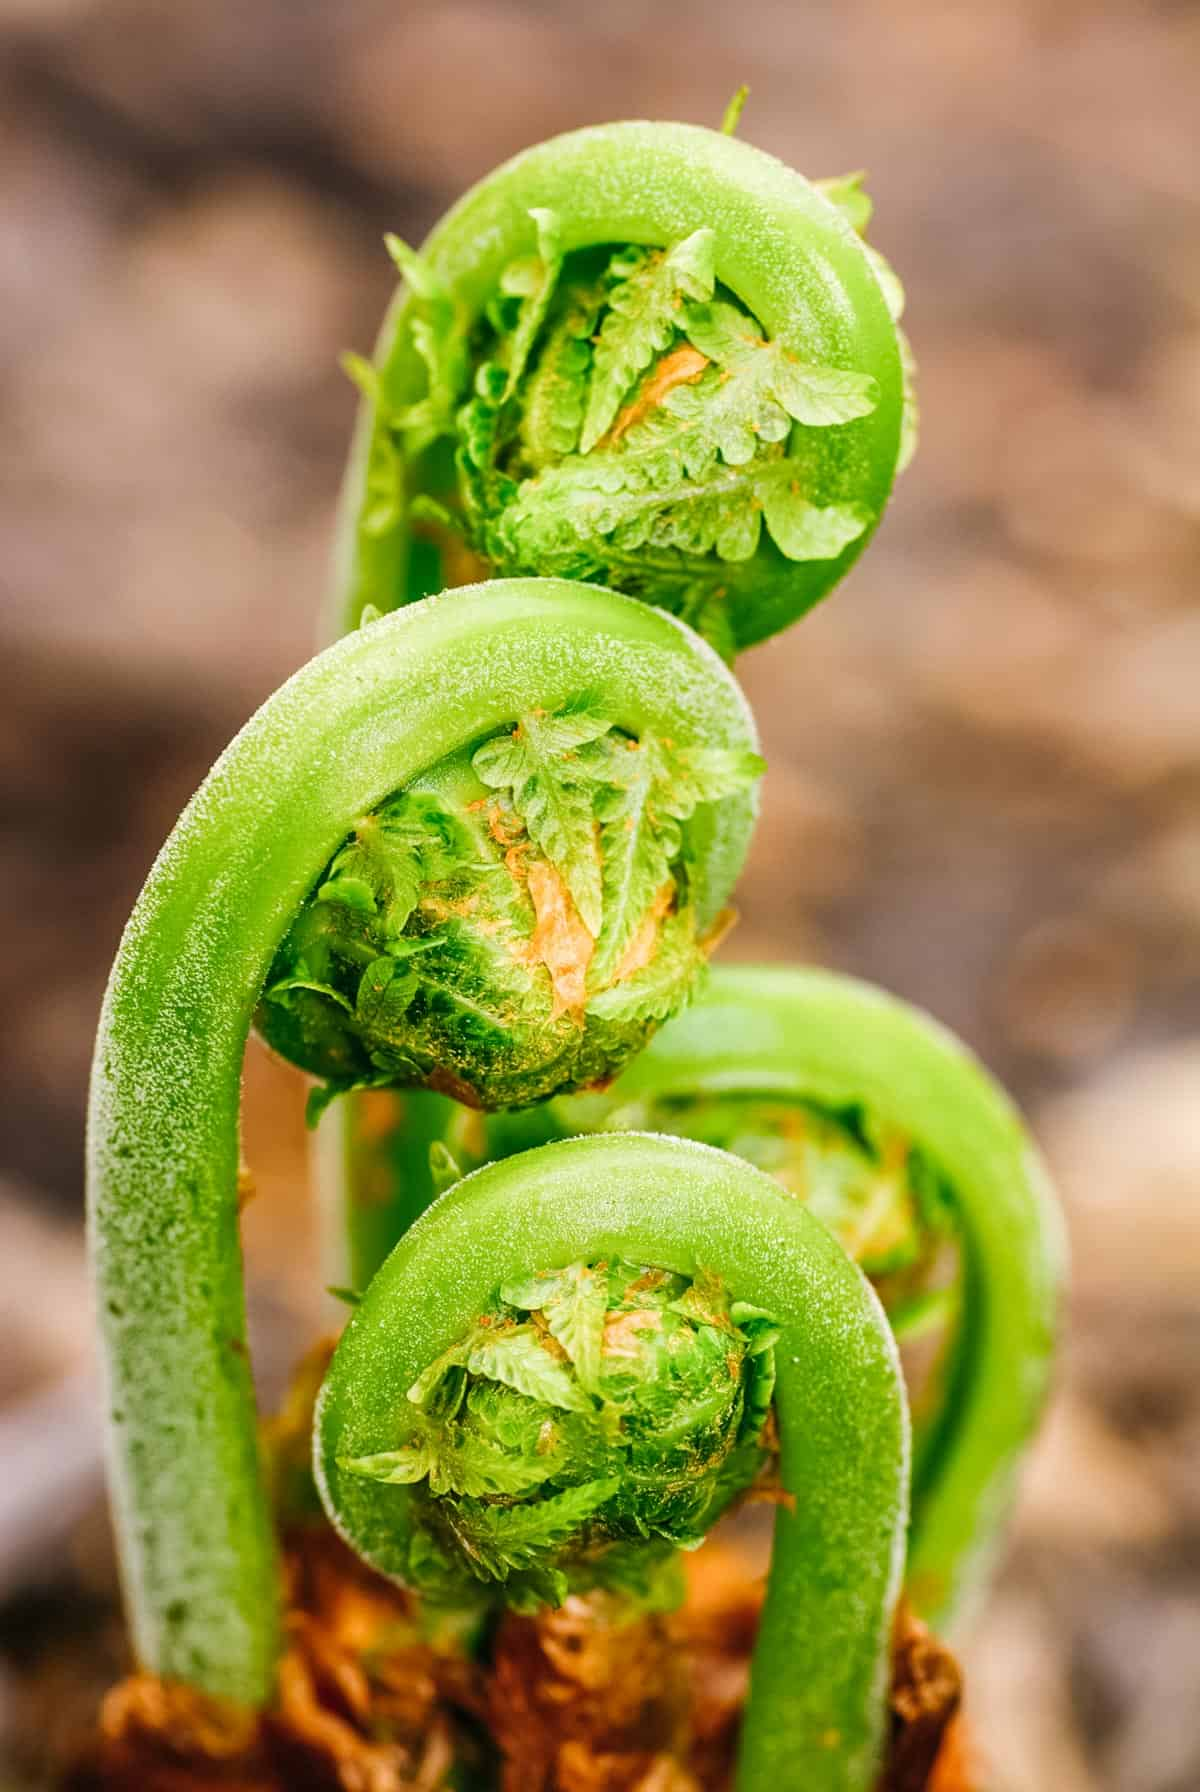 fiddlehead ferns growing